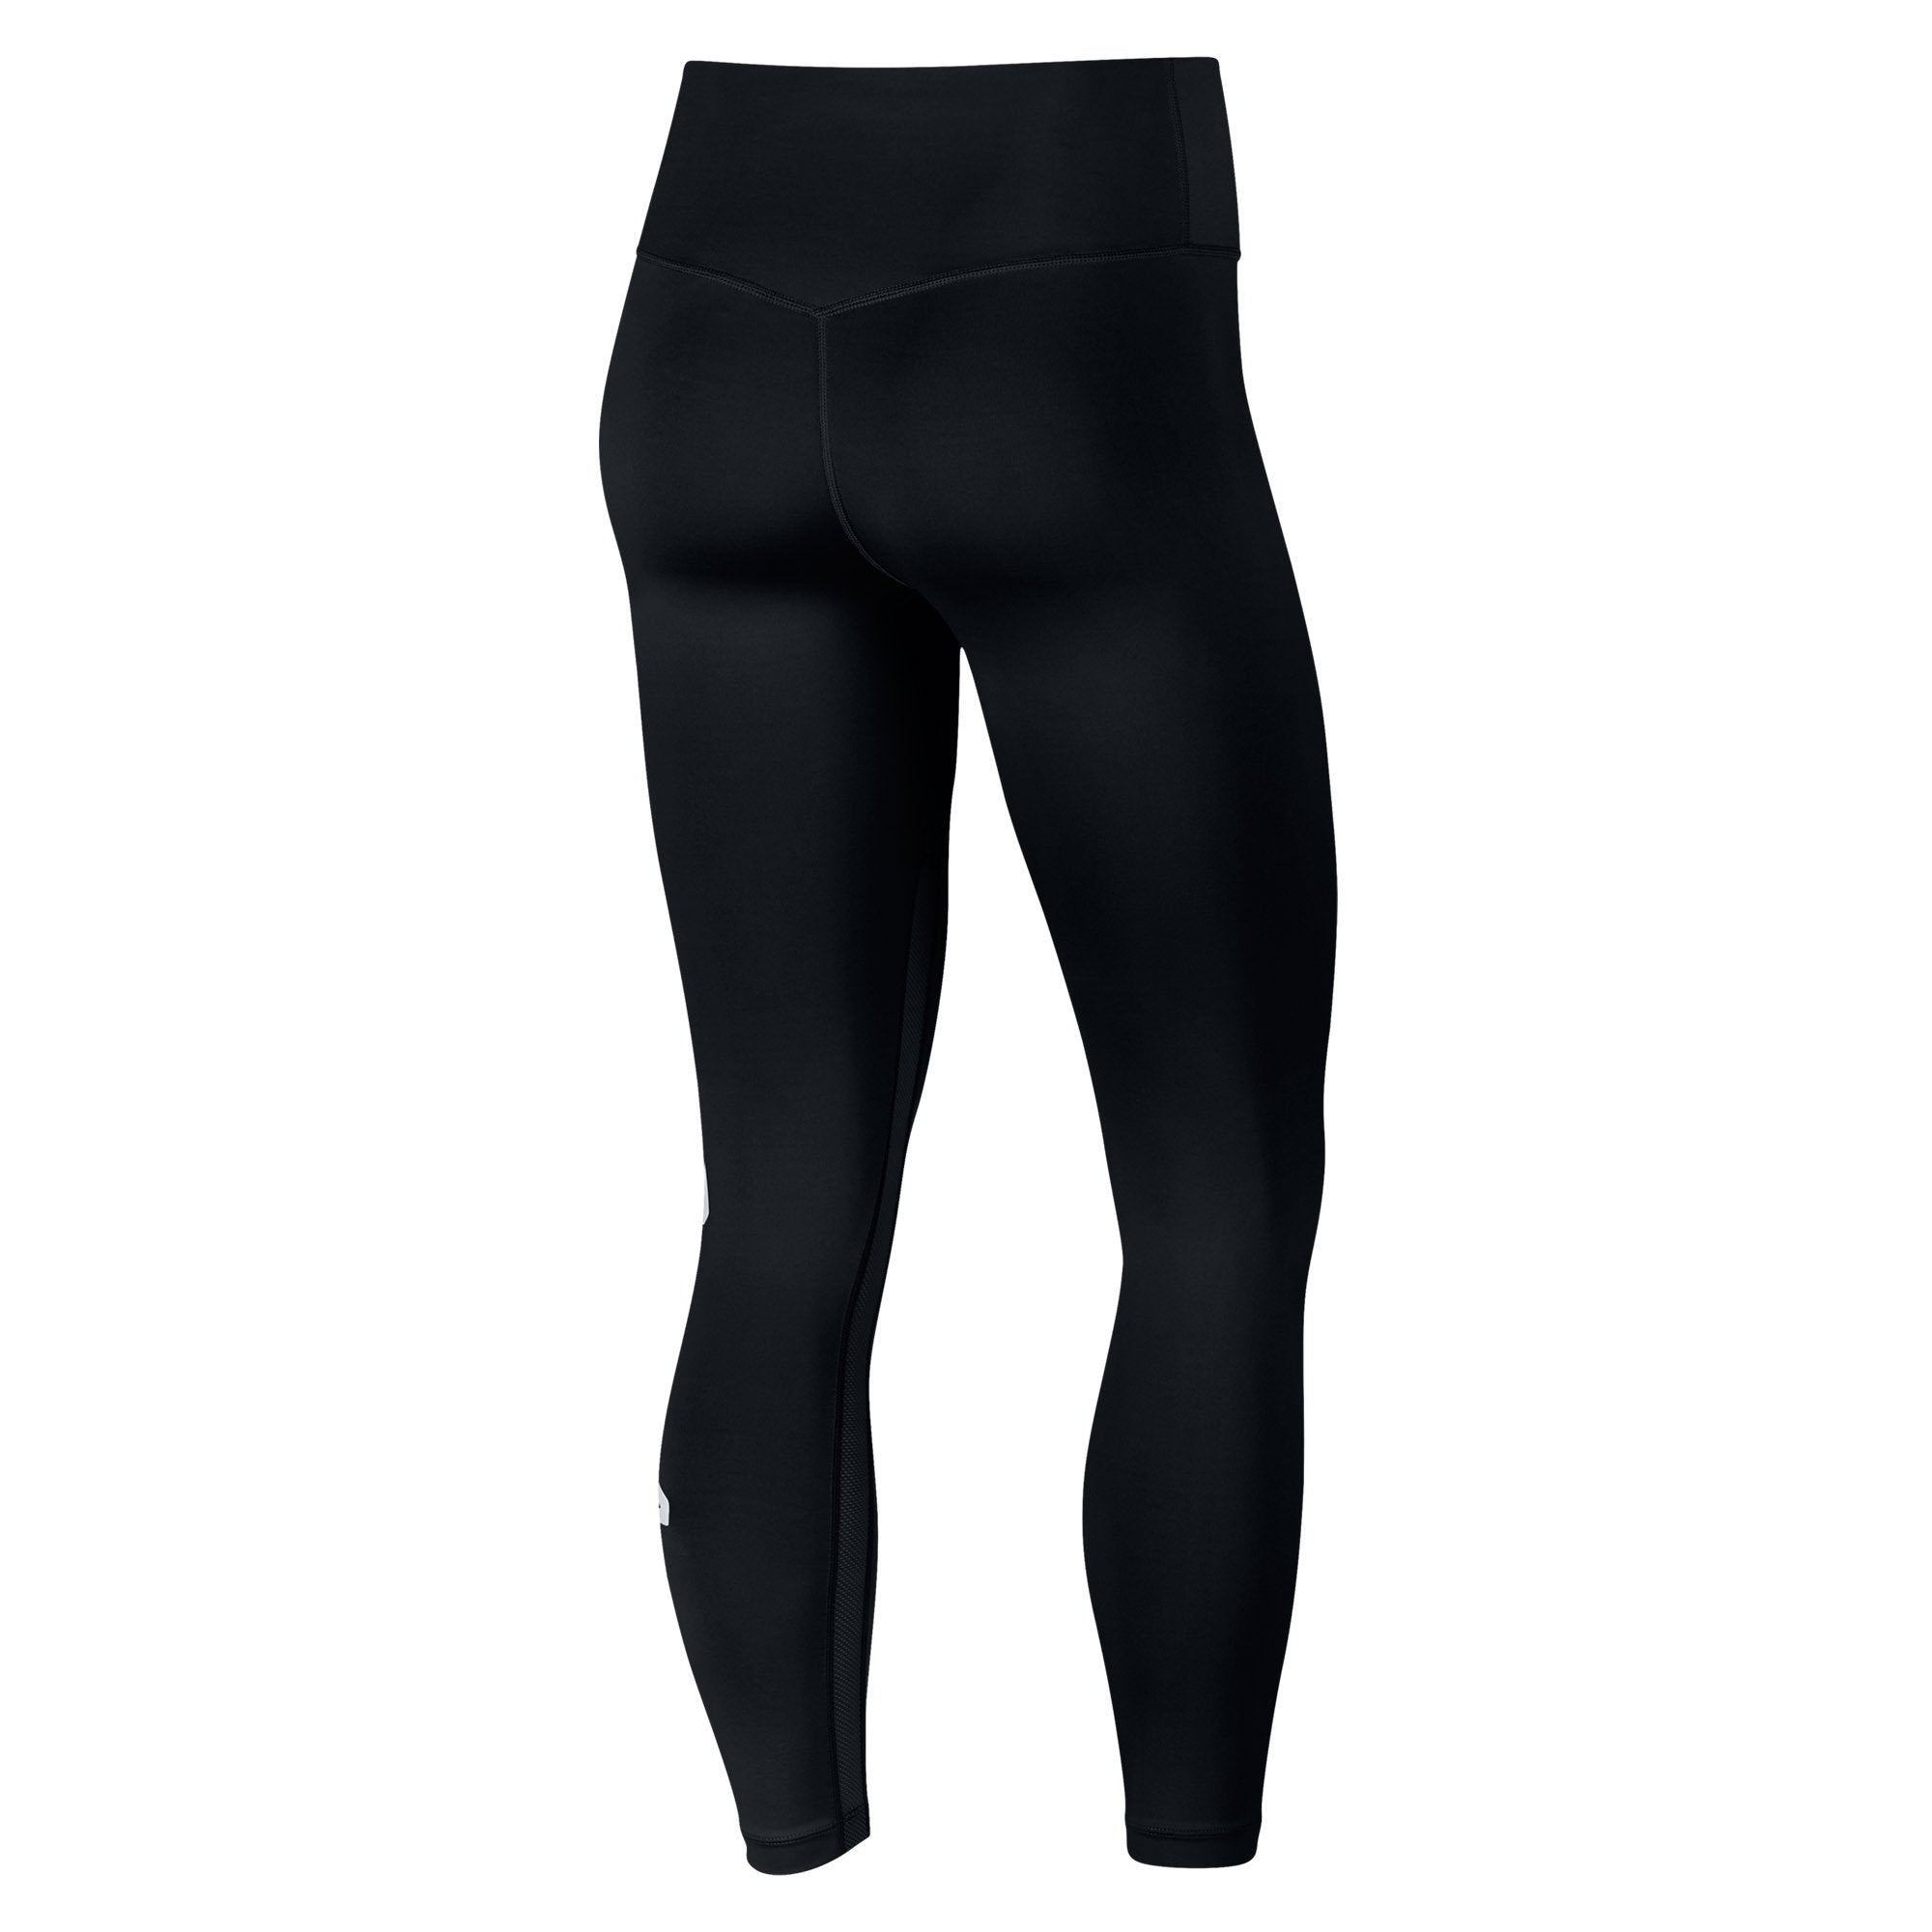 54fb23125c6d5 Buy Nike Women Just Do It Graphic One Tights Online in Singapore ...